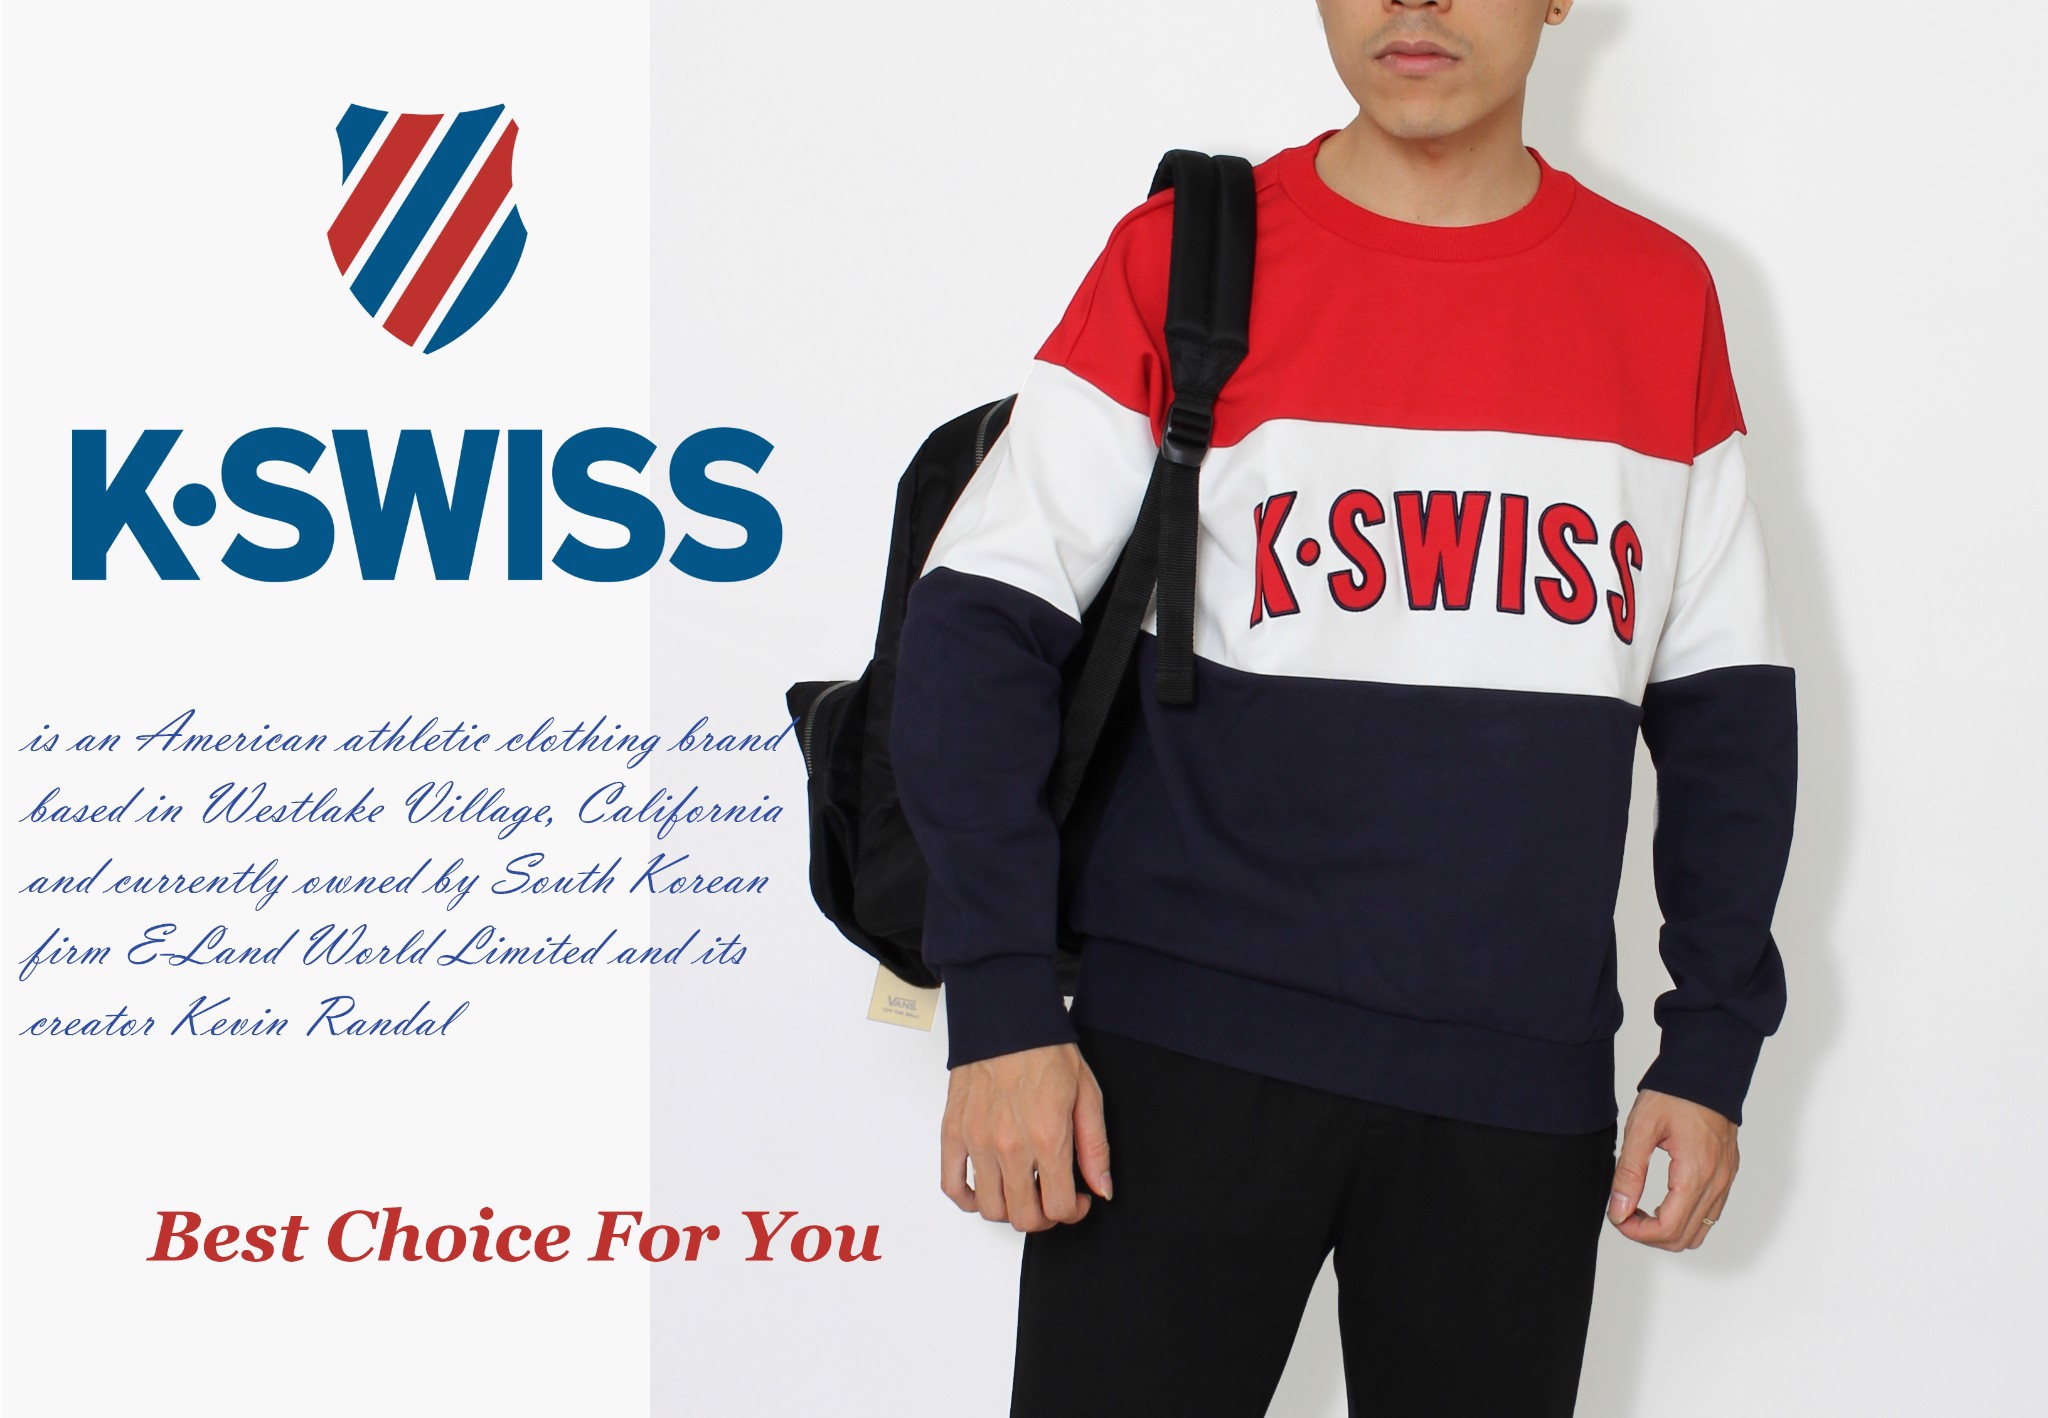 Kswiss Sweater Red White